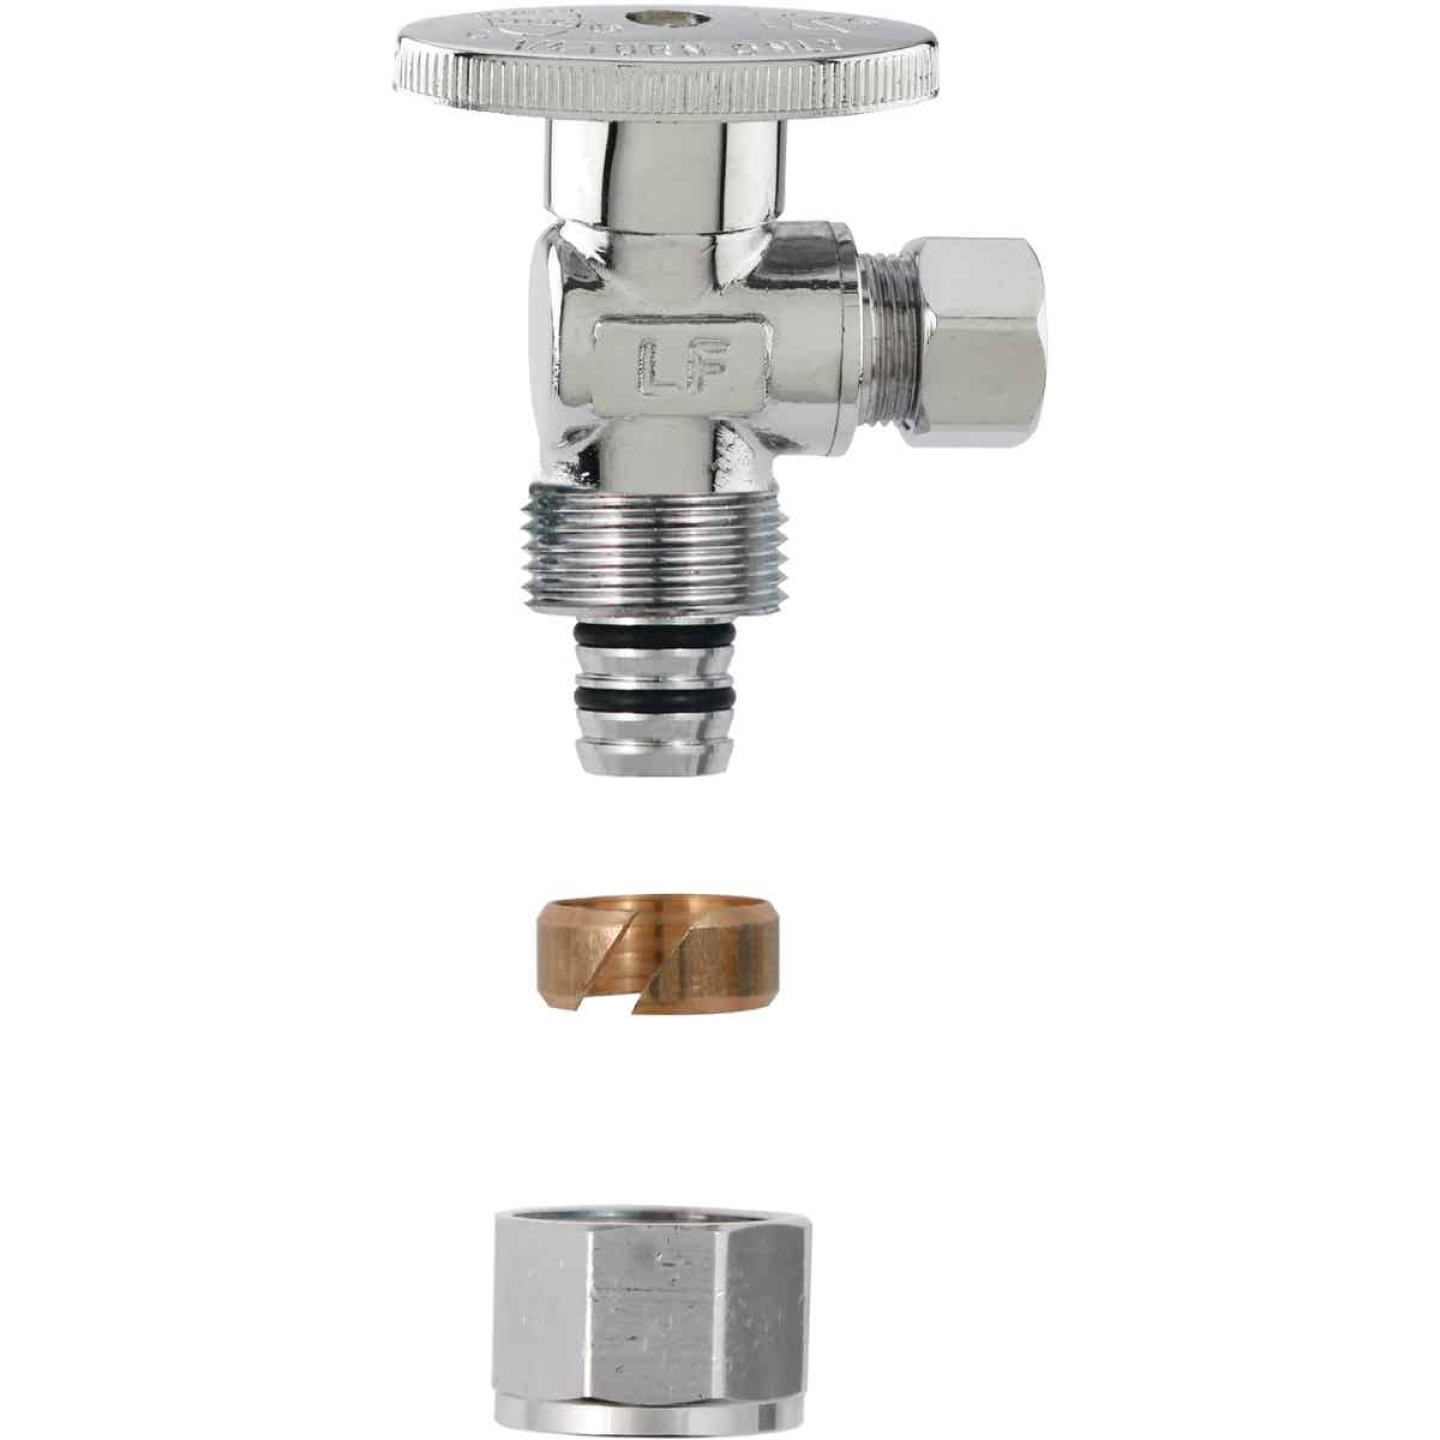 Plumb Pak No Crimp 1/2 In. x 3/8 In. Quarter Turn PEX Angle Valve Image 1